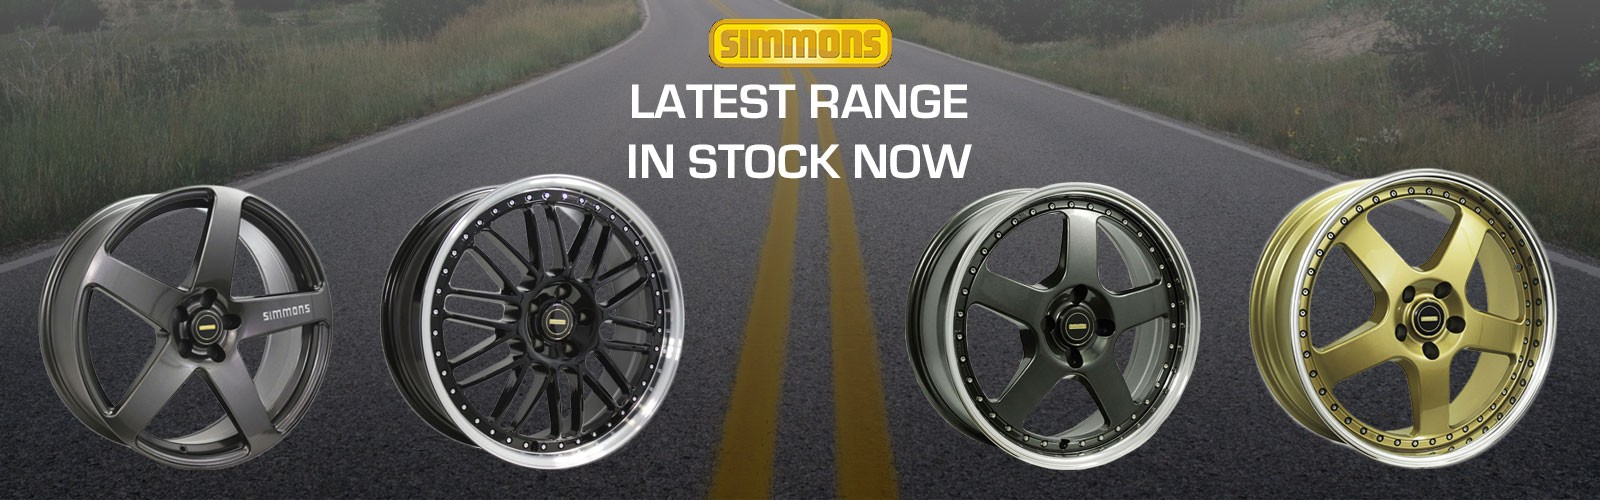 Simmons - Wheels For The Serious Enthusiast